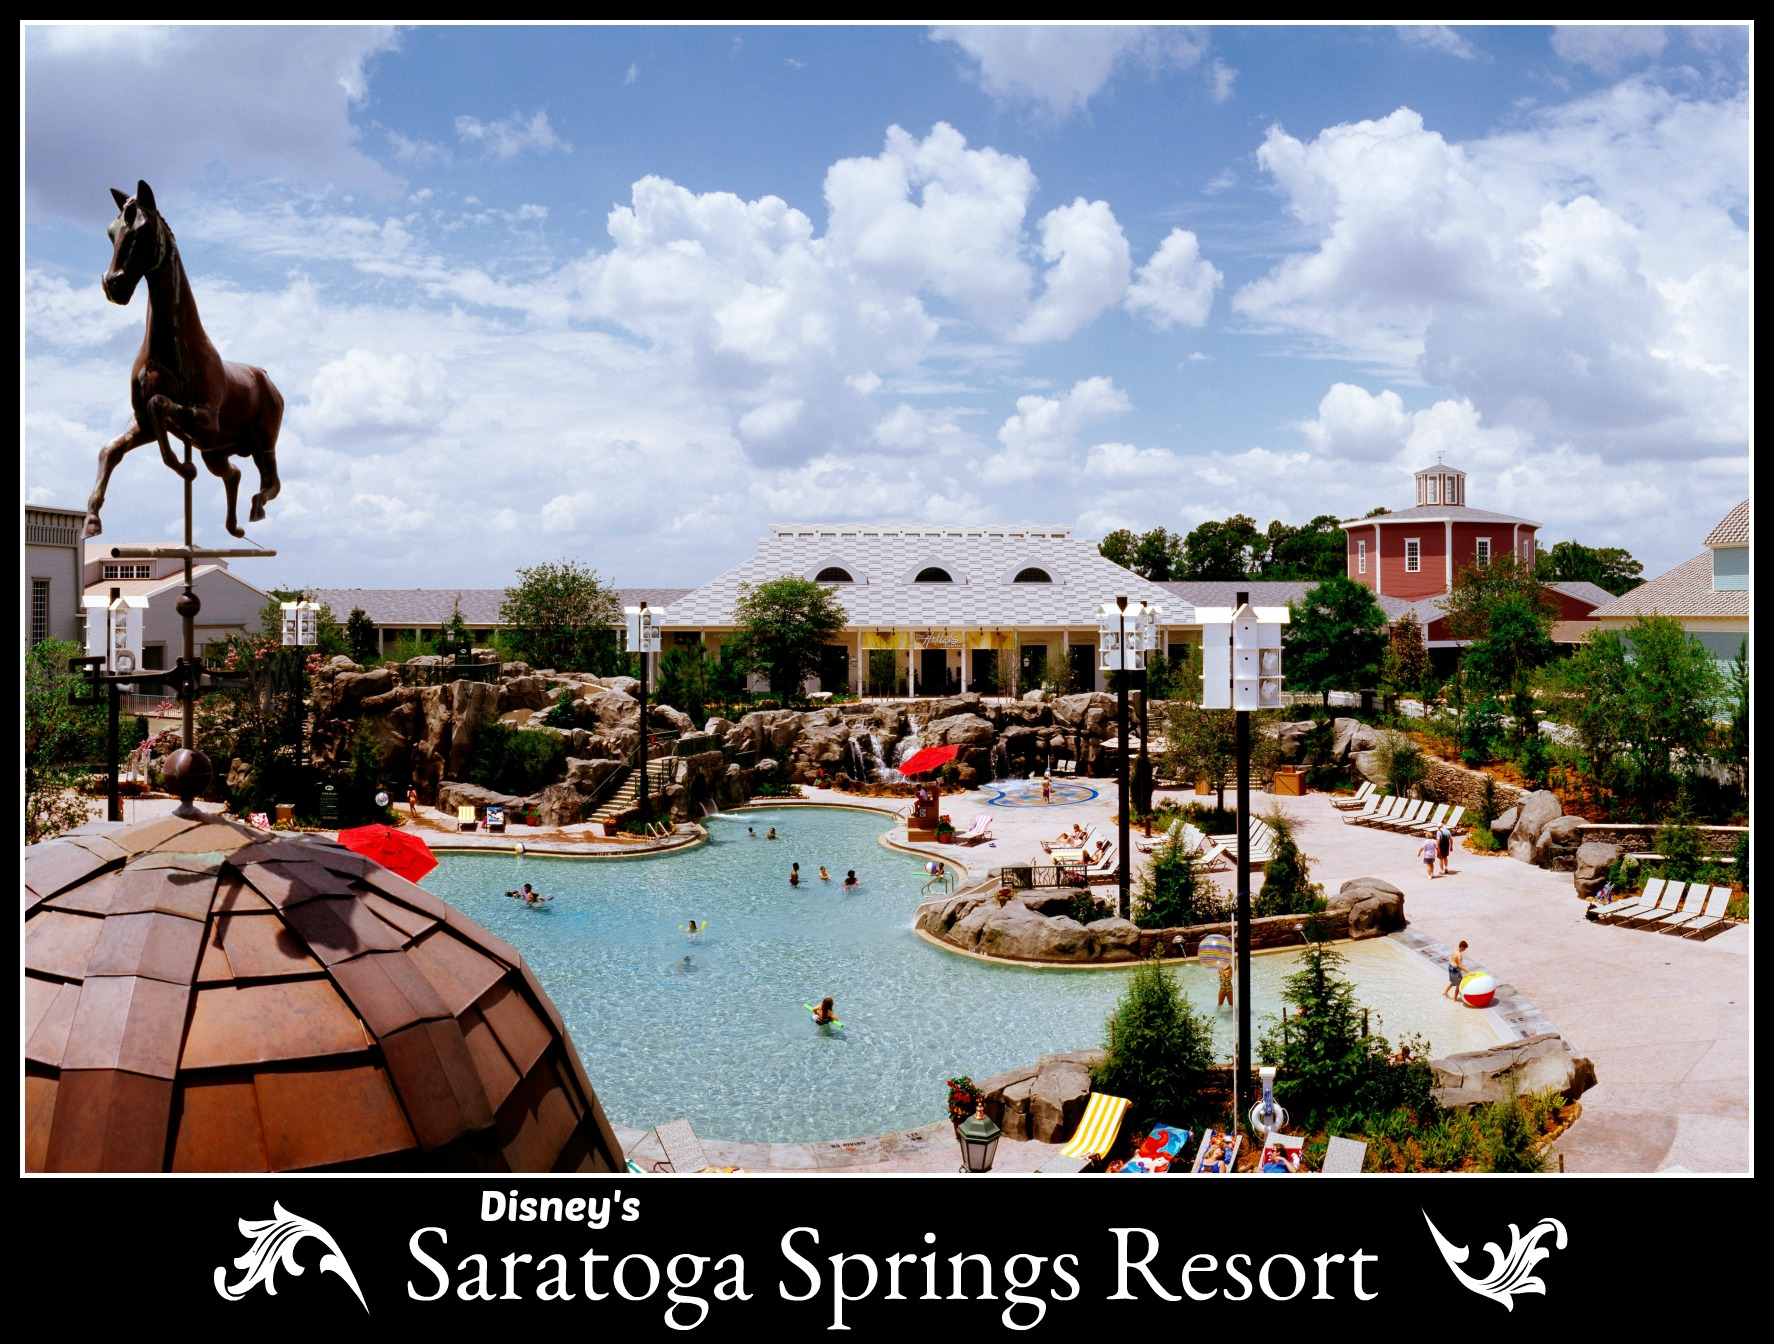 Disneys Saratoga Springs Resort and Spa  The Magic For